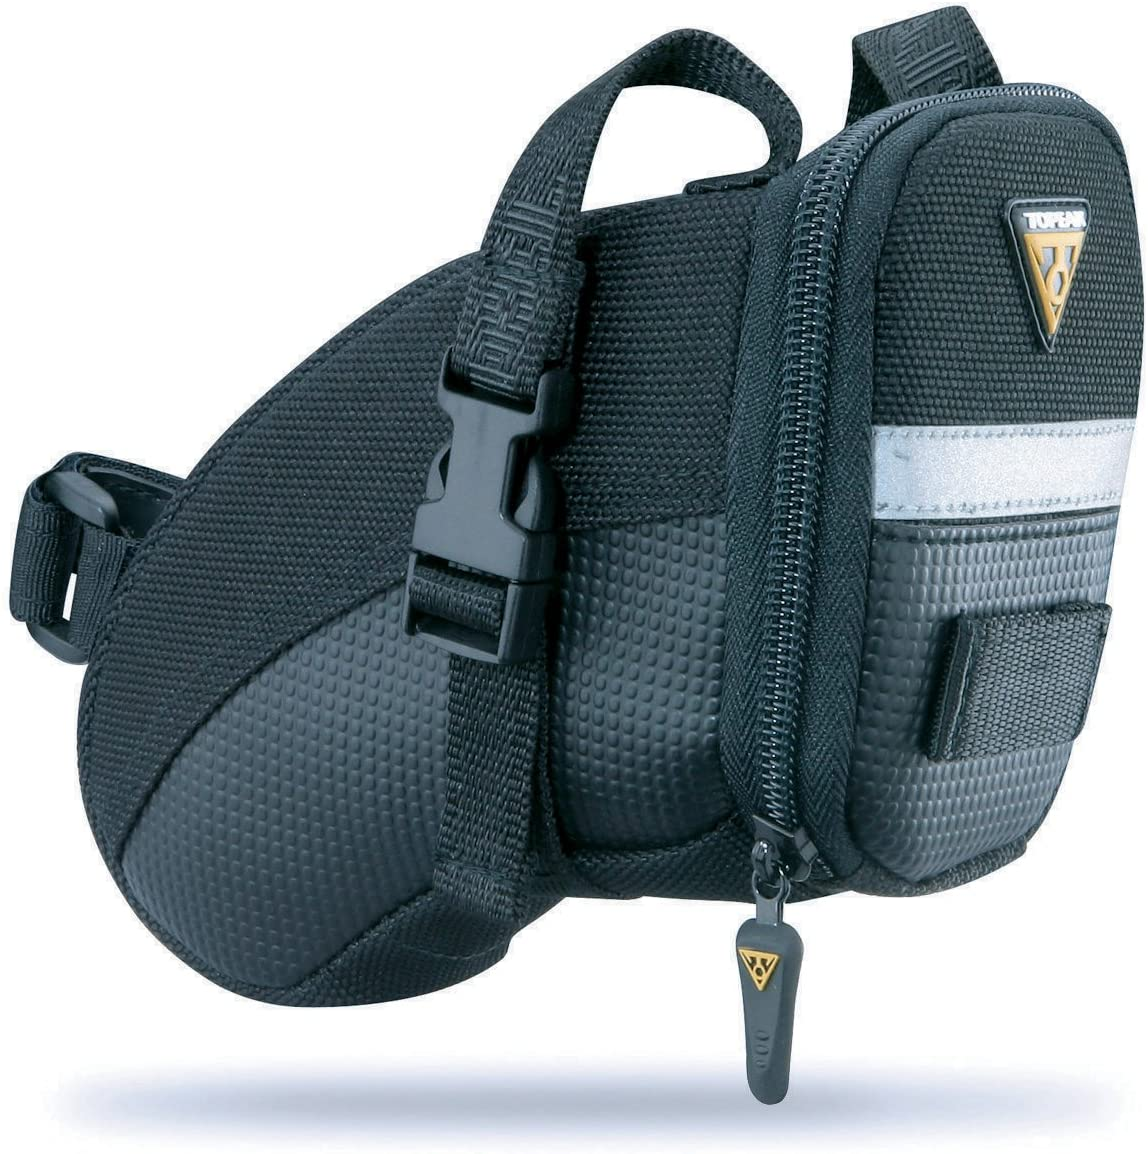 Topeak seat pack Aero Wedge Packs saddle bag